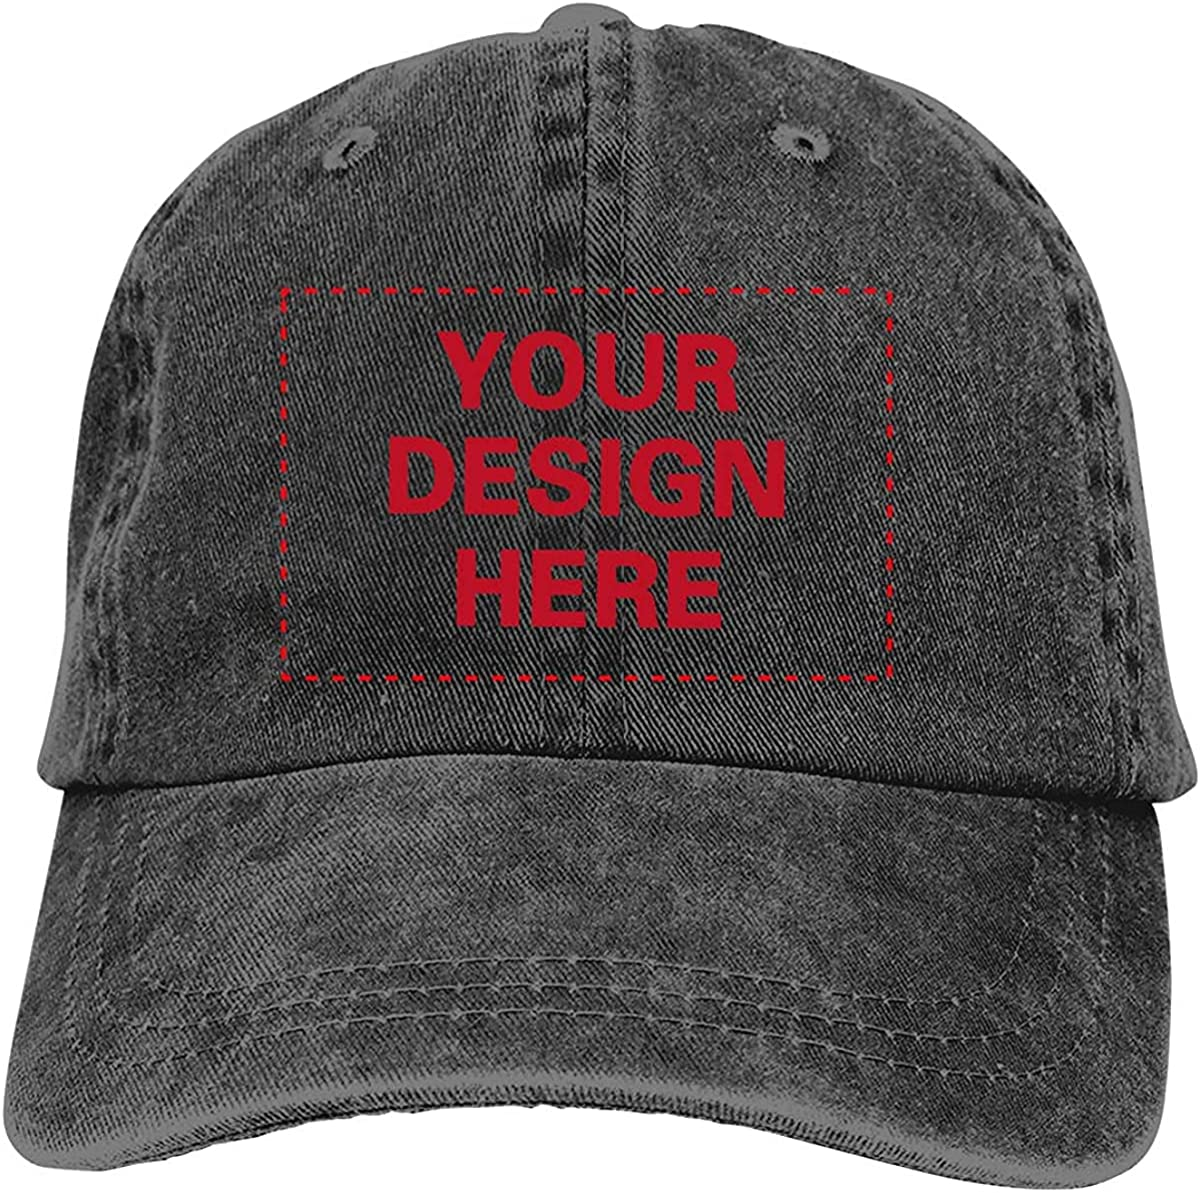 Custom Classic Baseball Cap, Design Your Own Vintage Washed Dad Hat Personalized Name Text Logo, Unisex Adjustable Hat